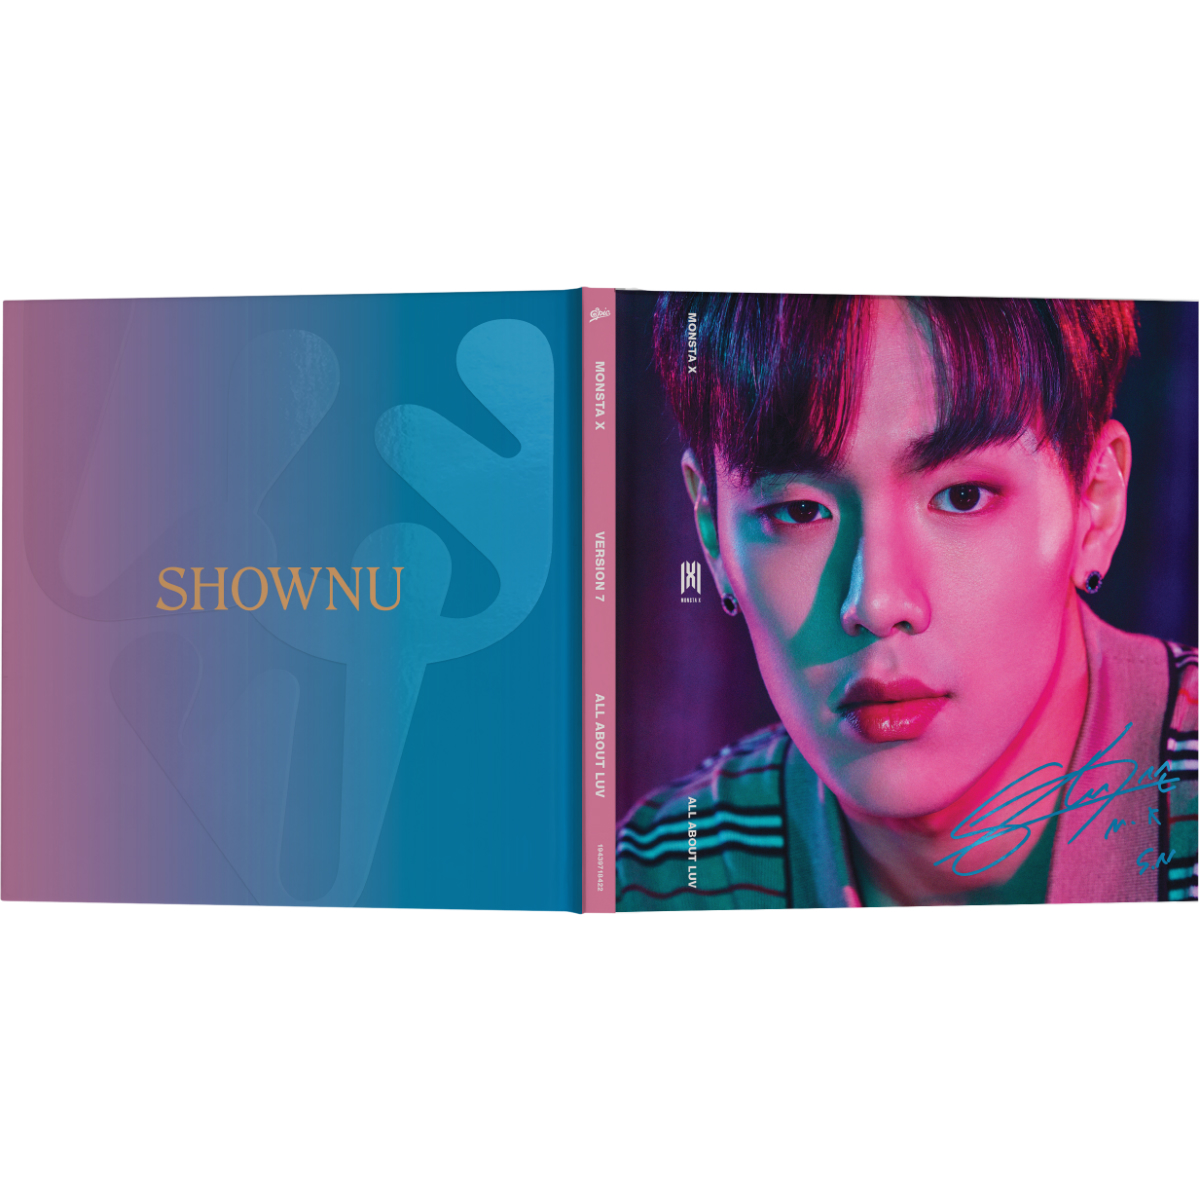 All About Luv - Shownu Album Art